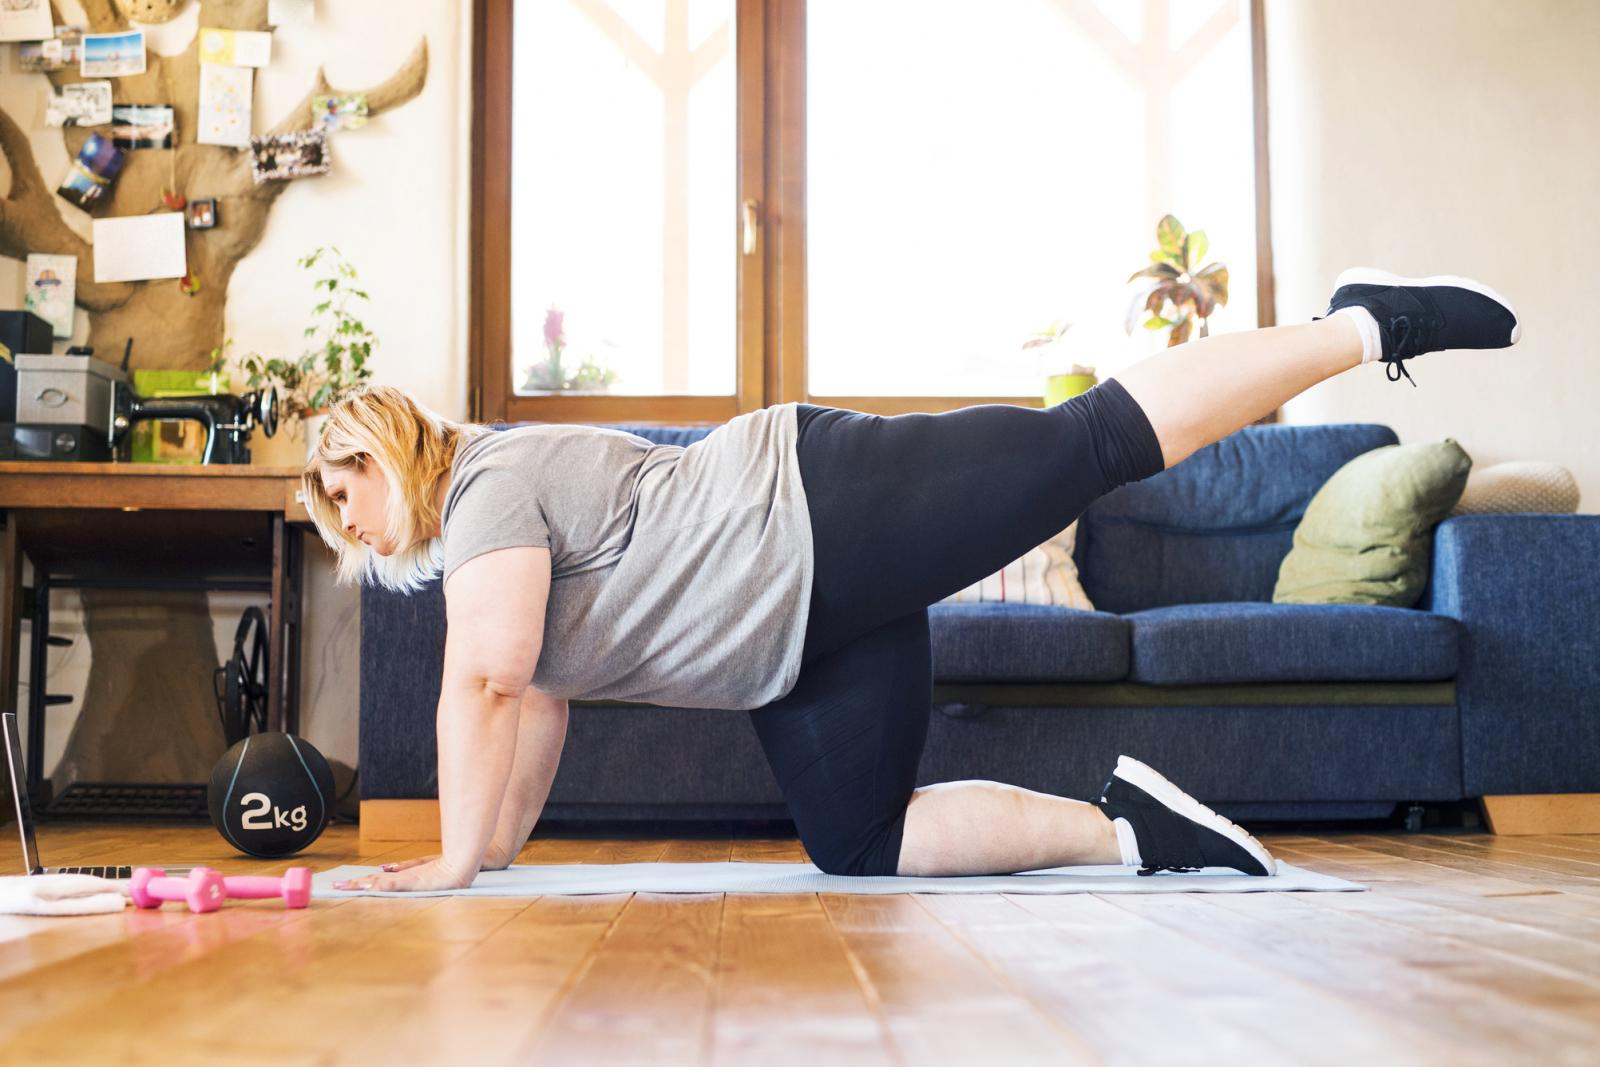 Overweight woman at home working out